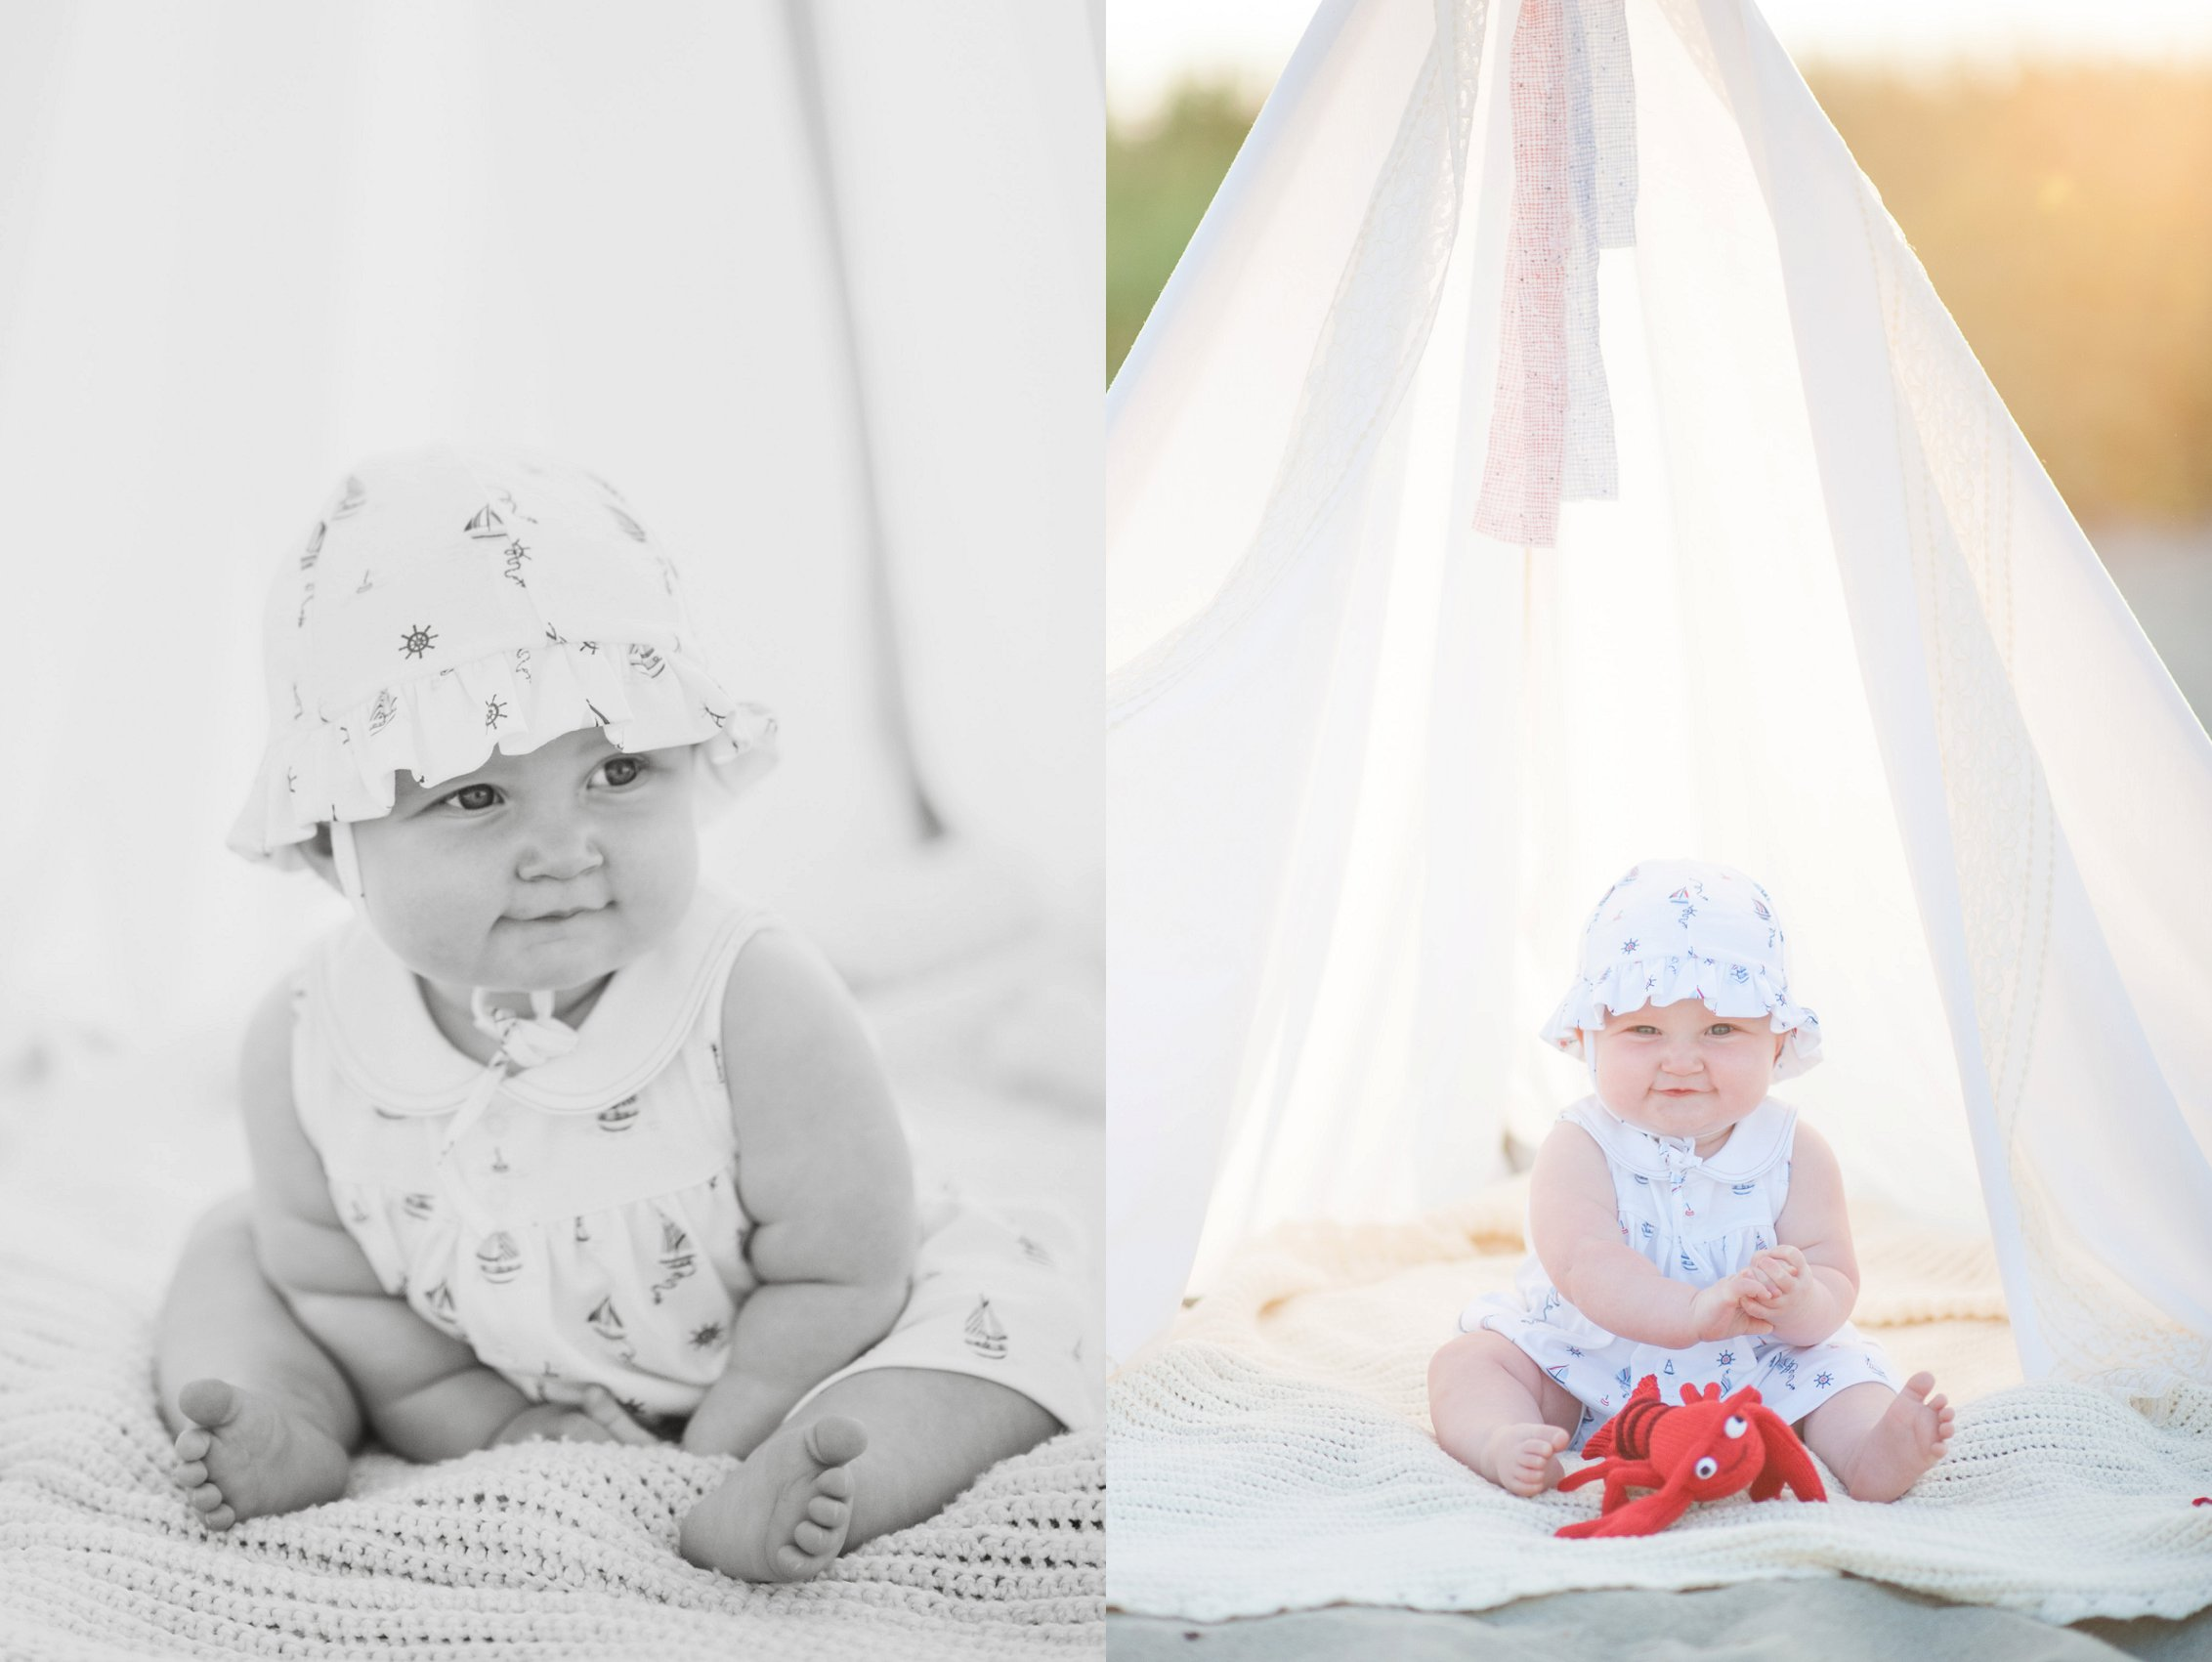 Gloucester Rockport beach baby portrait photo Meghan-3.jpg